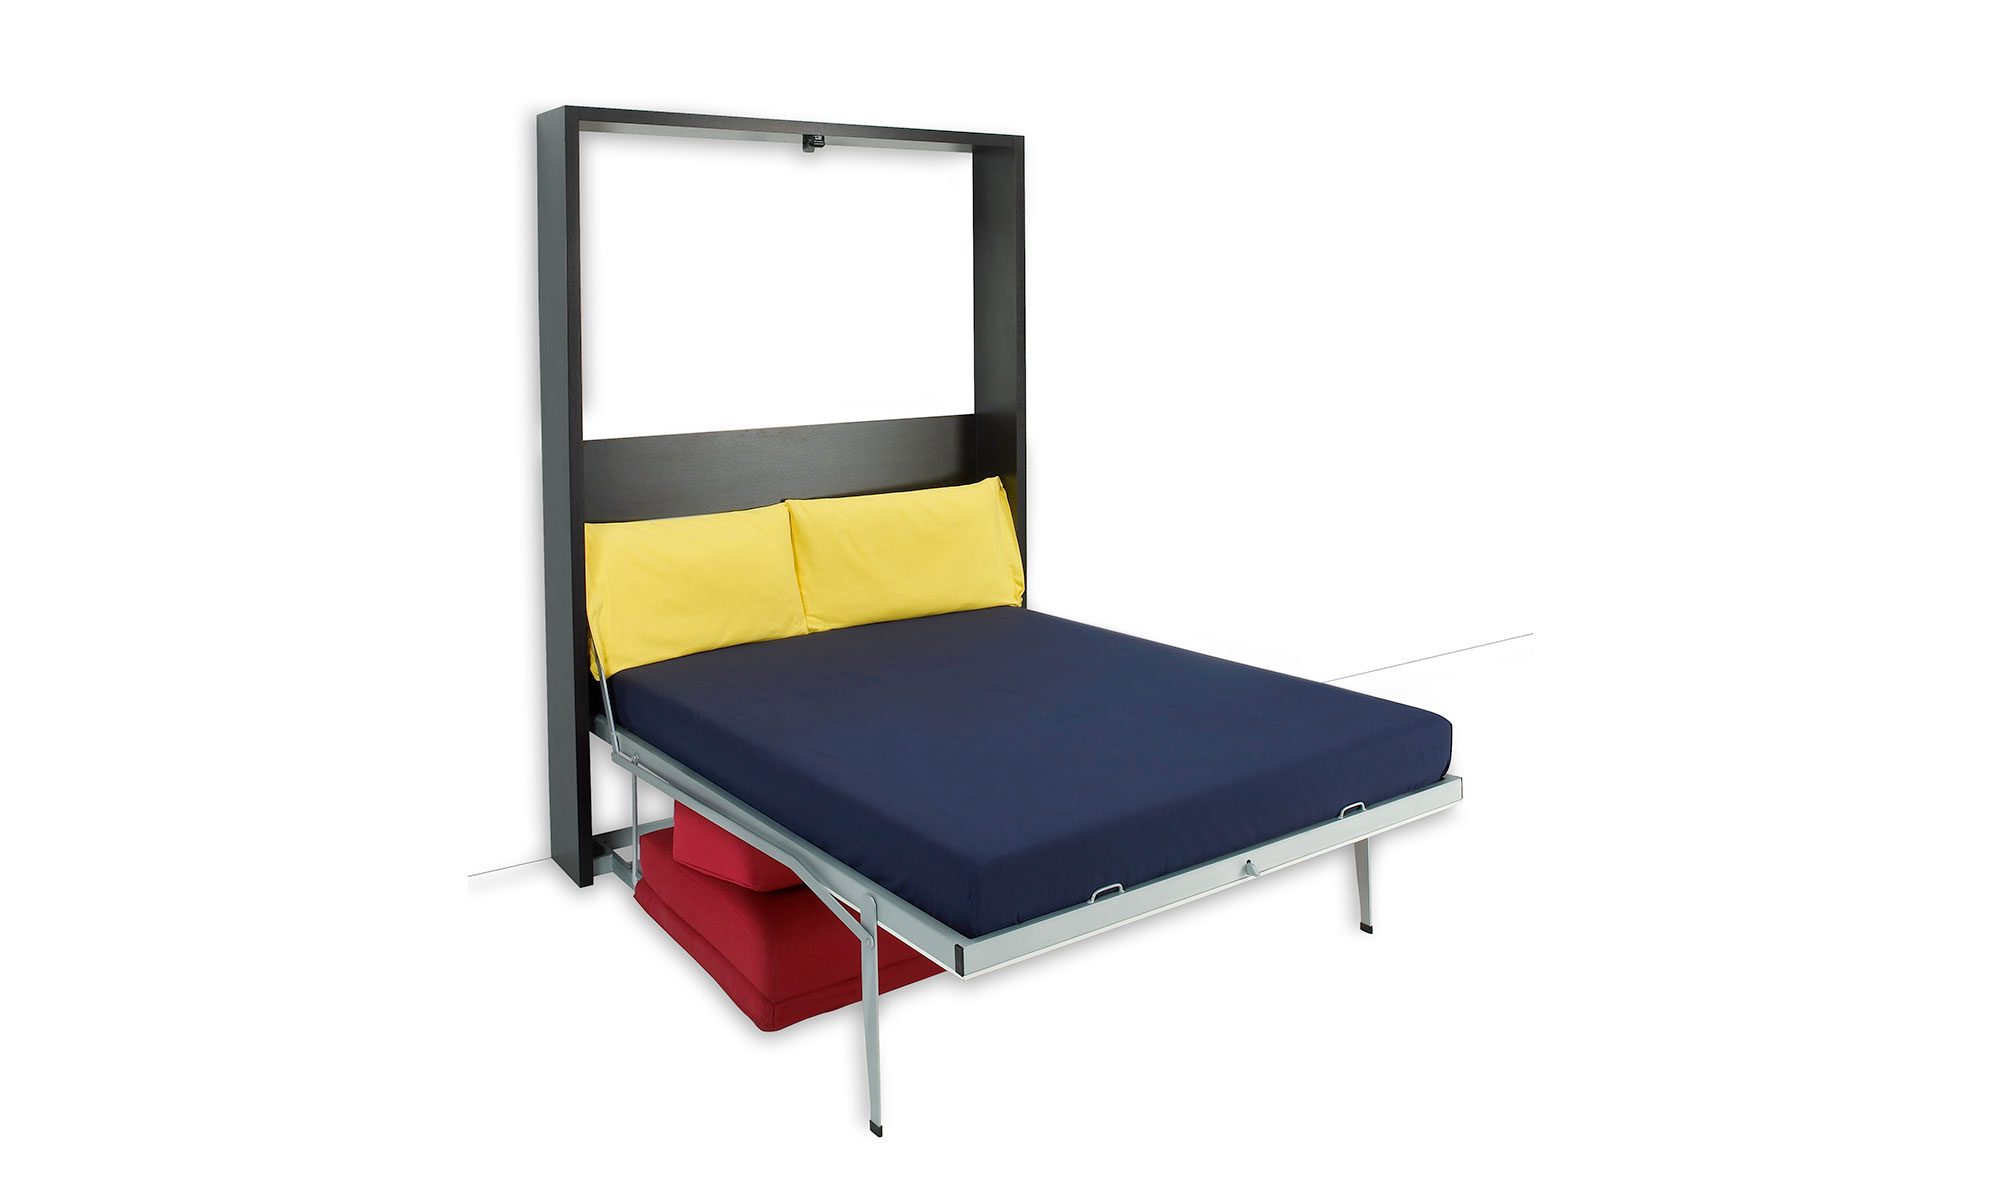 Sof cama abatible houdini verticale no disponible en for Sofa cama muebles rey